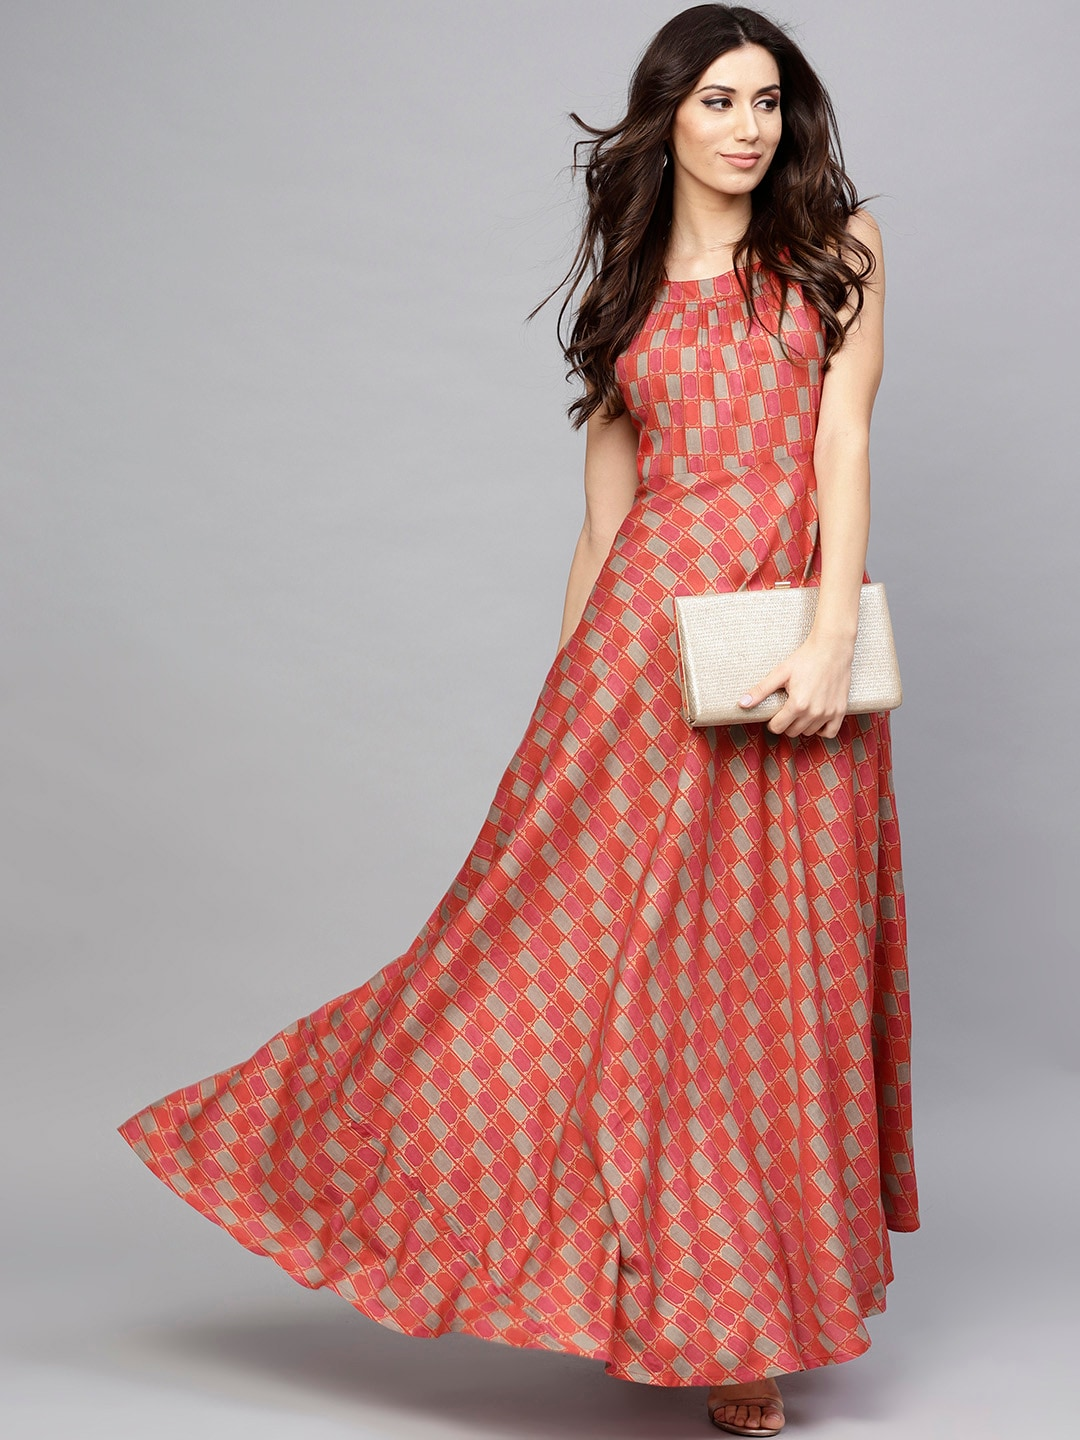 Sweater Dress - Buy Sweater Dresses Online in India  e258288aa